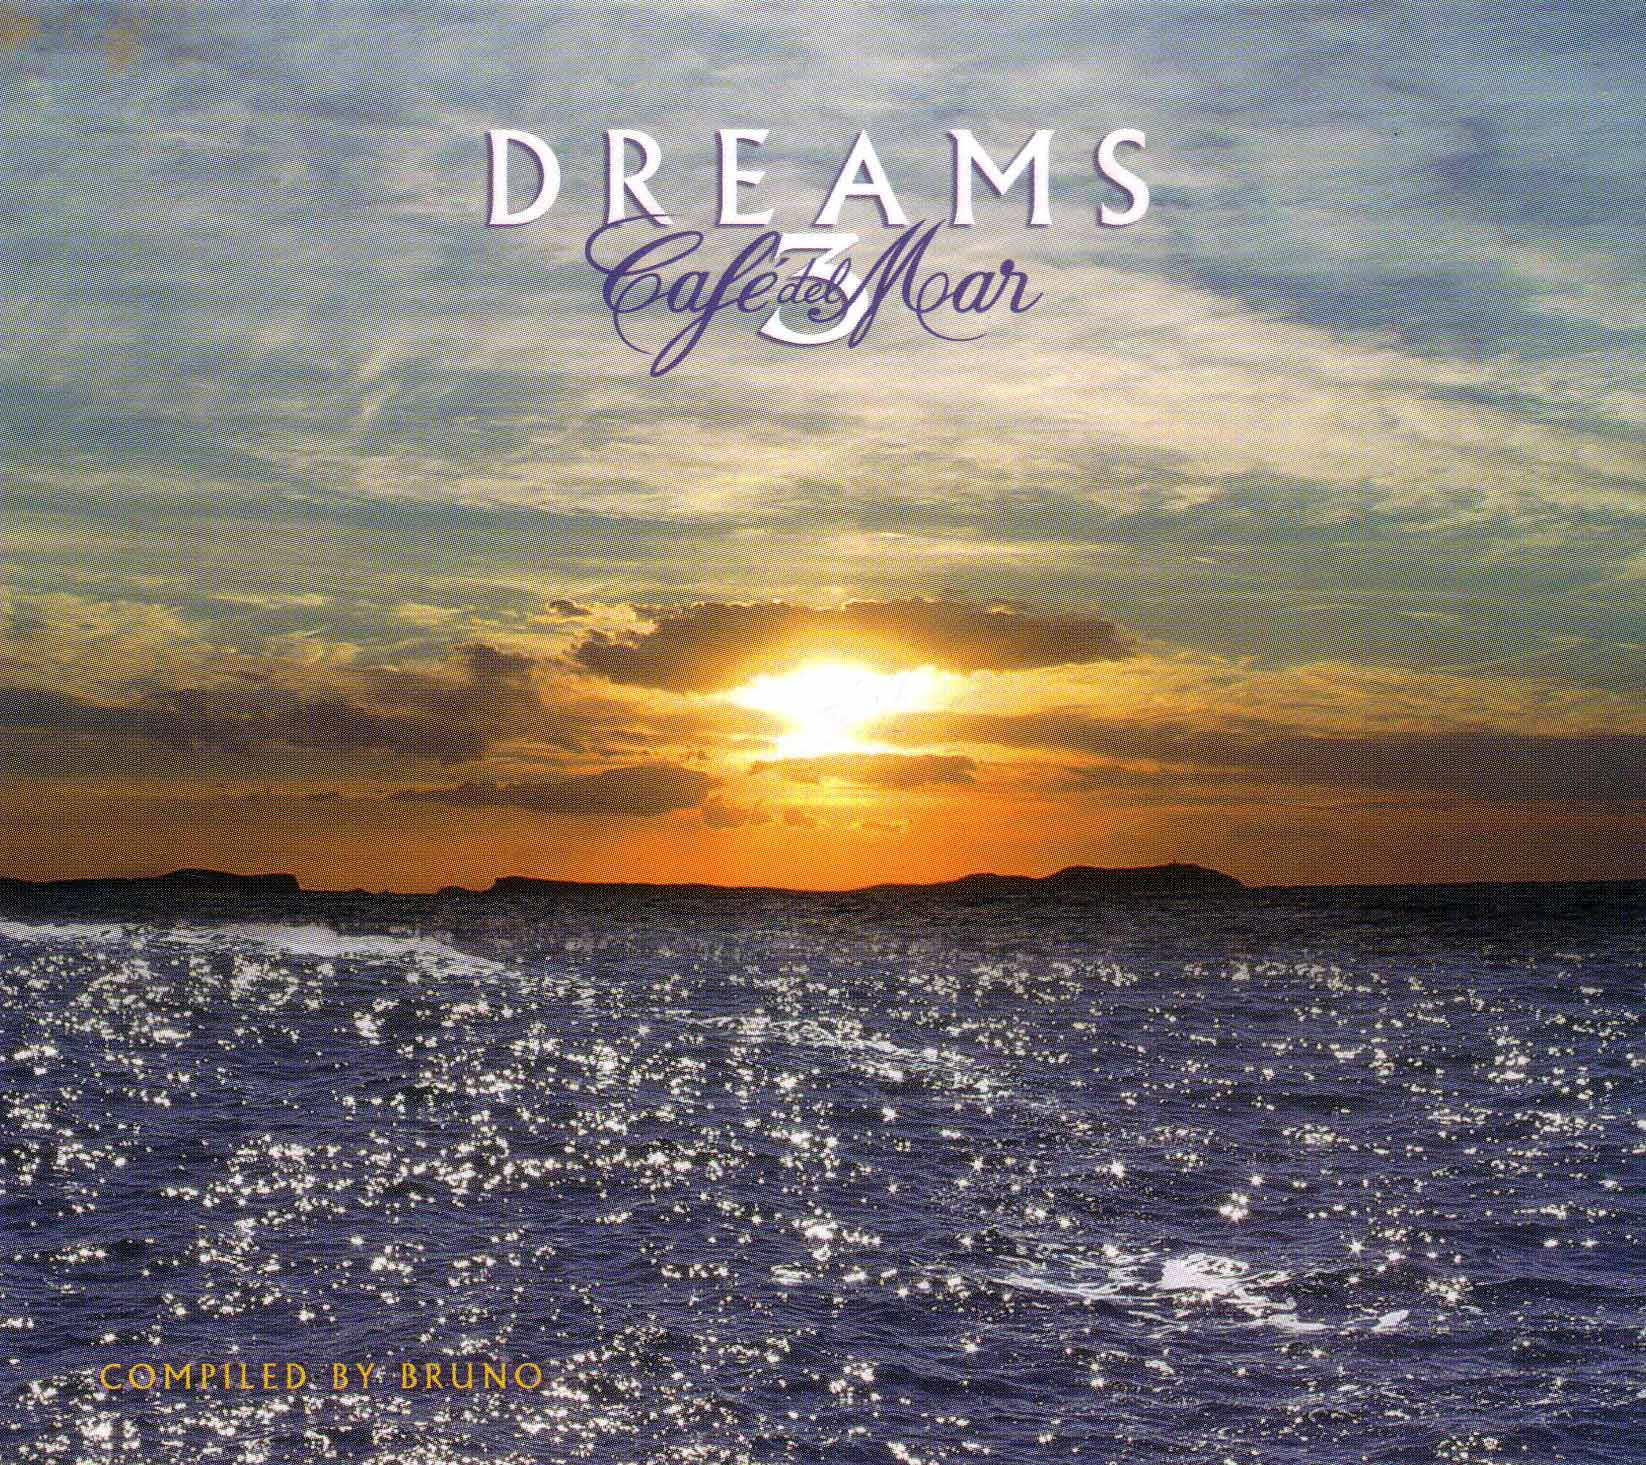 Café Del Mar -Dreams 3